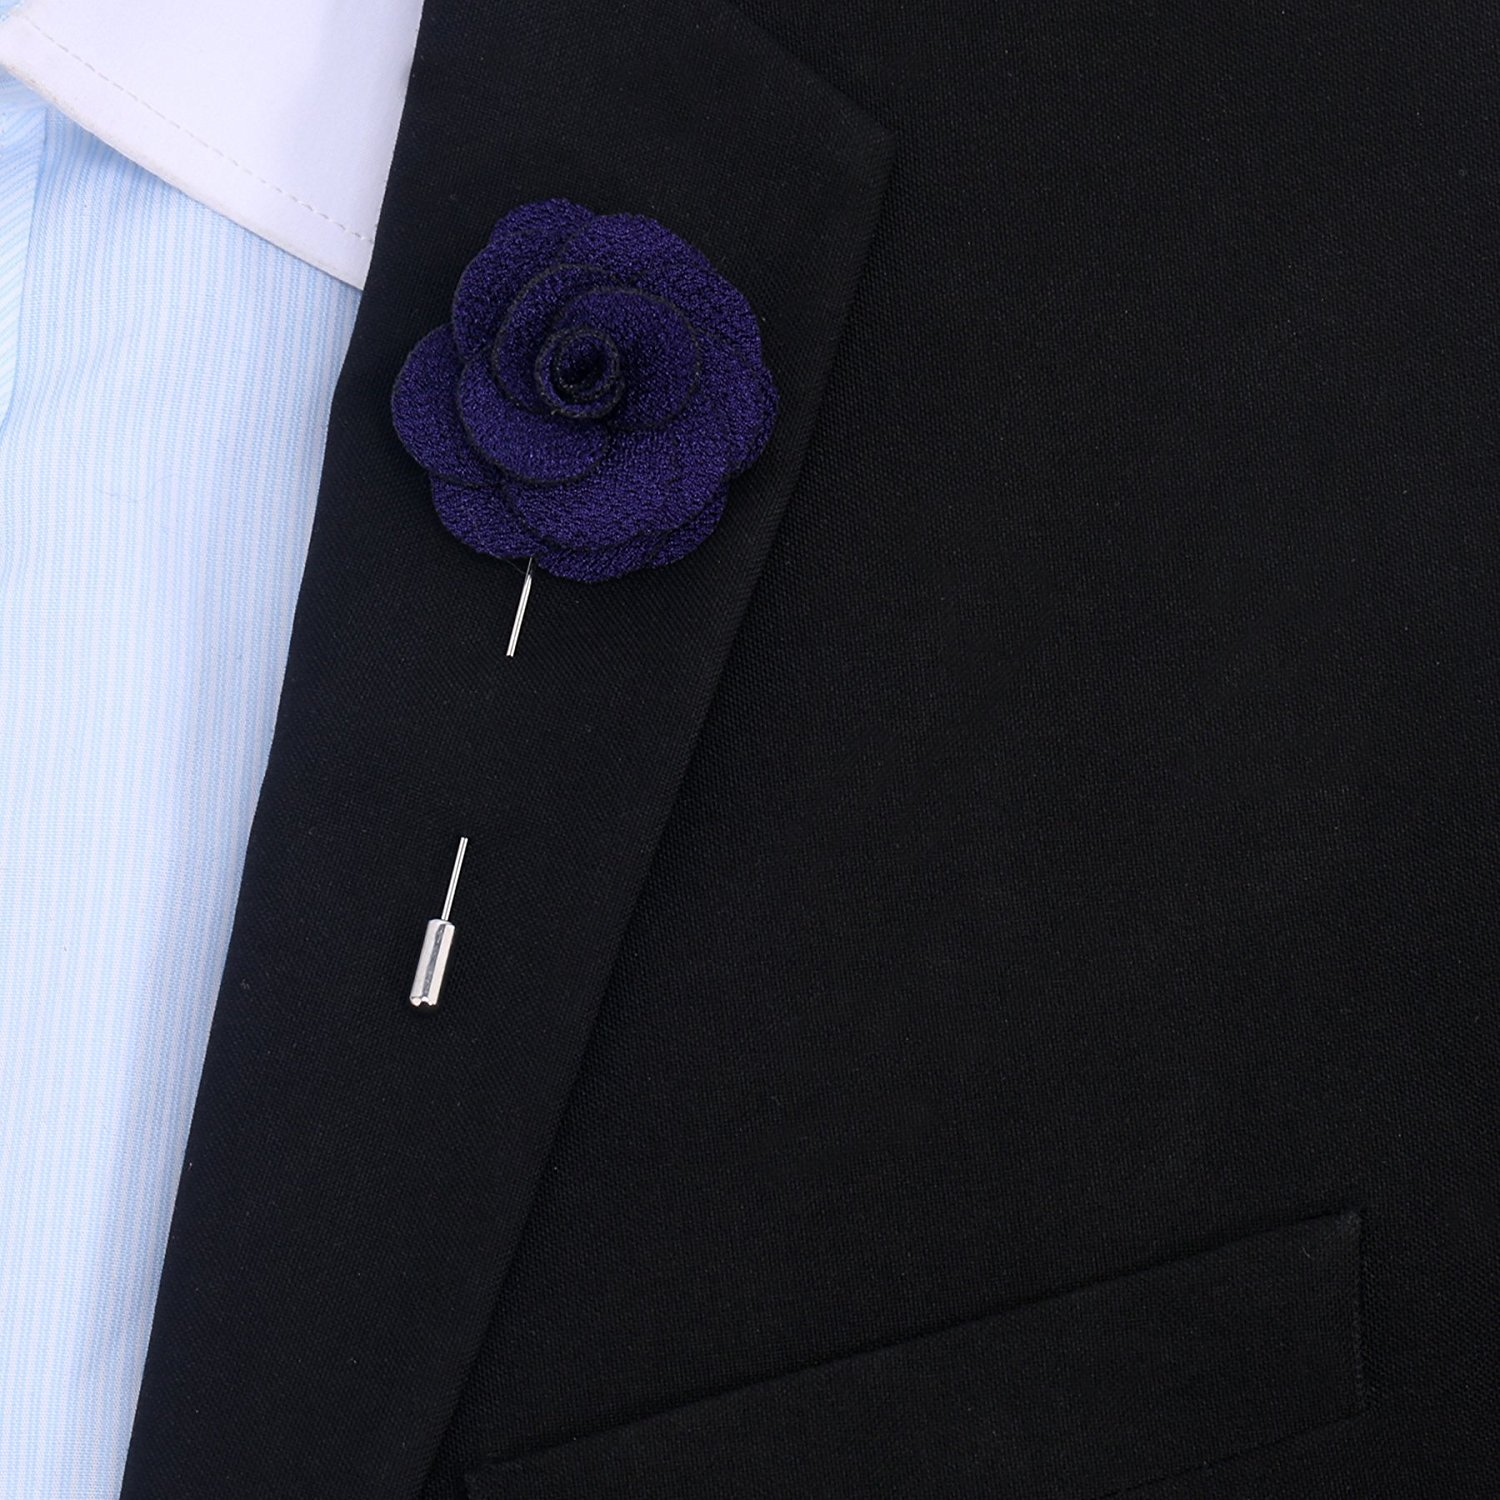 furl new suit furn pins brooch pin main hook arrivals gotstyle and lapel